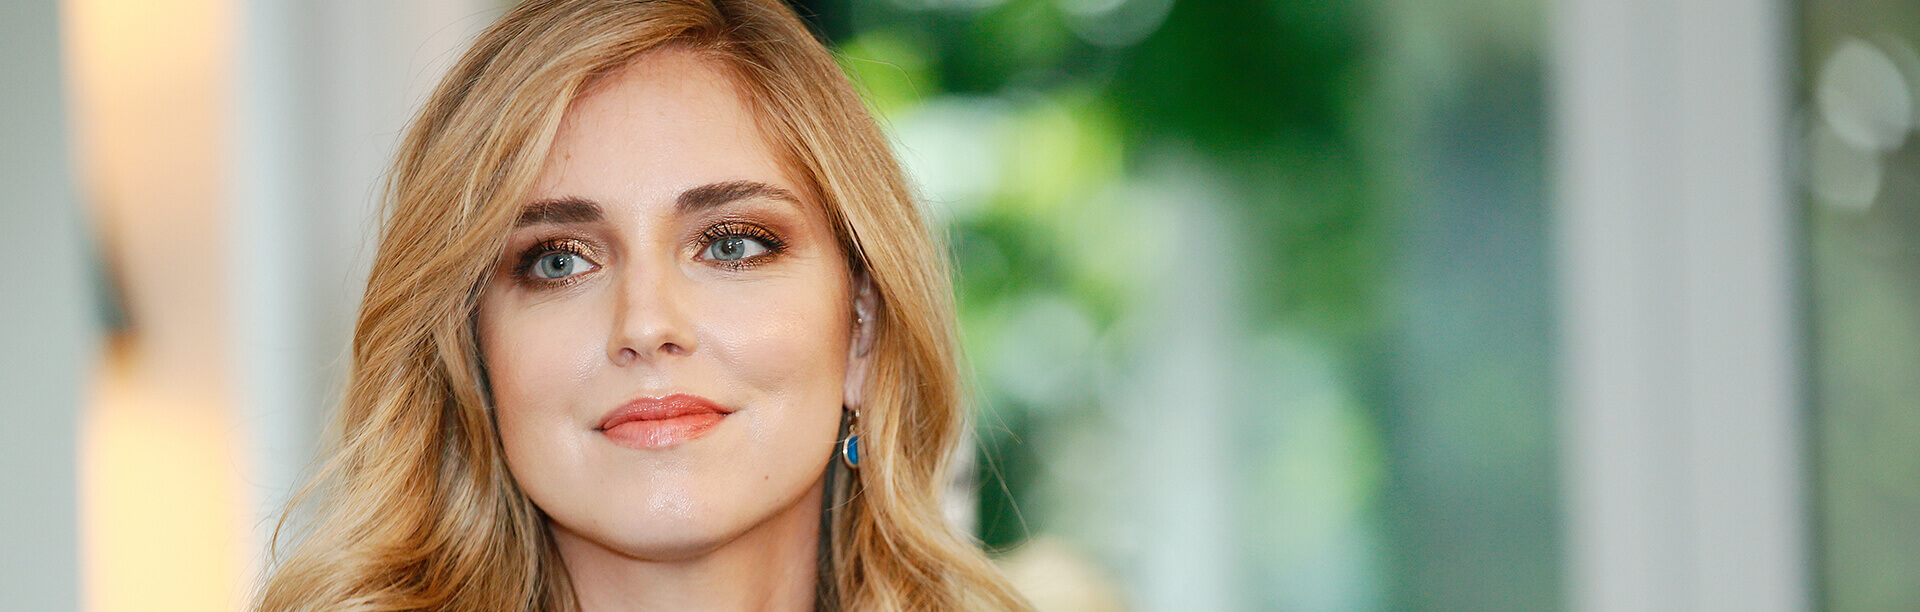 Chiara Ferragni tra le Top Influencer italiane